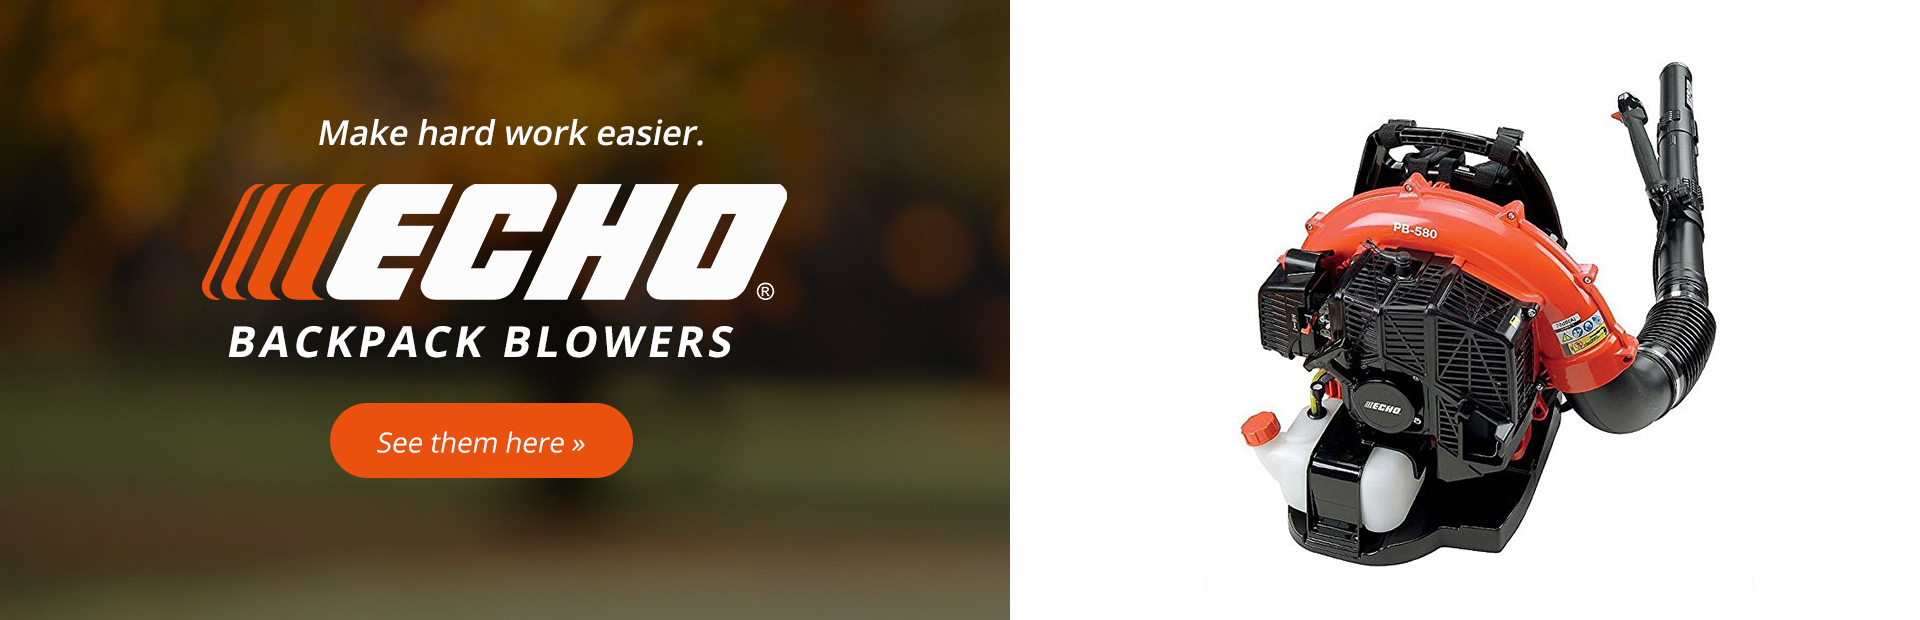 ECHO Backpack Blowers: Click here to see the models.